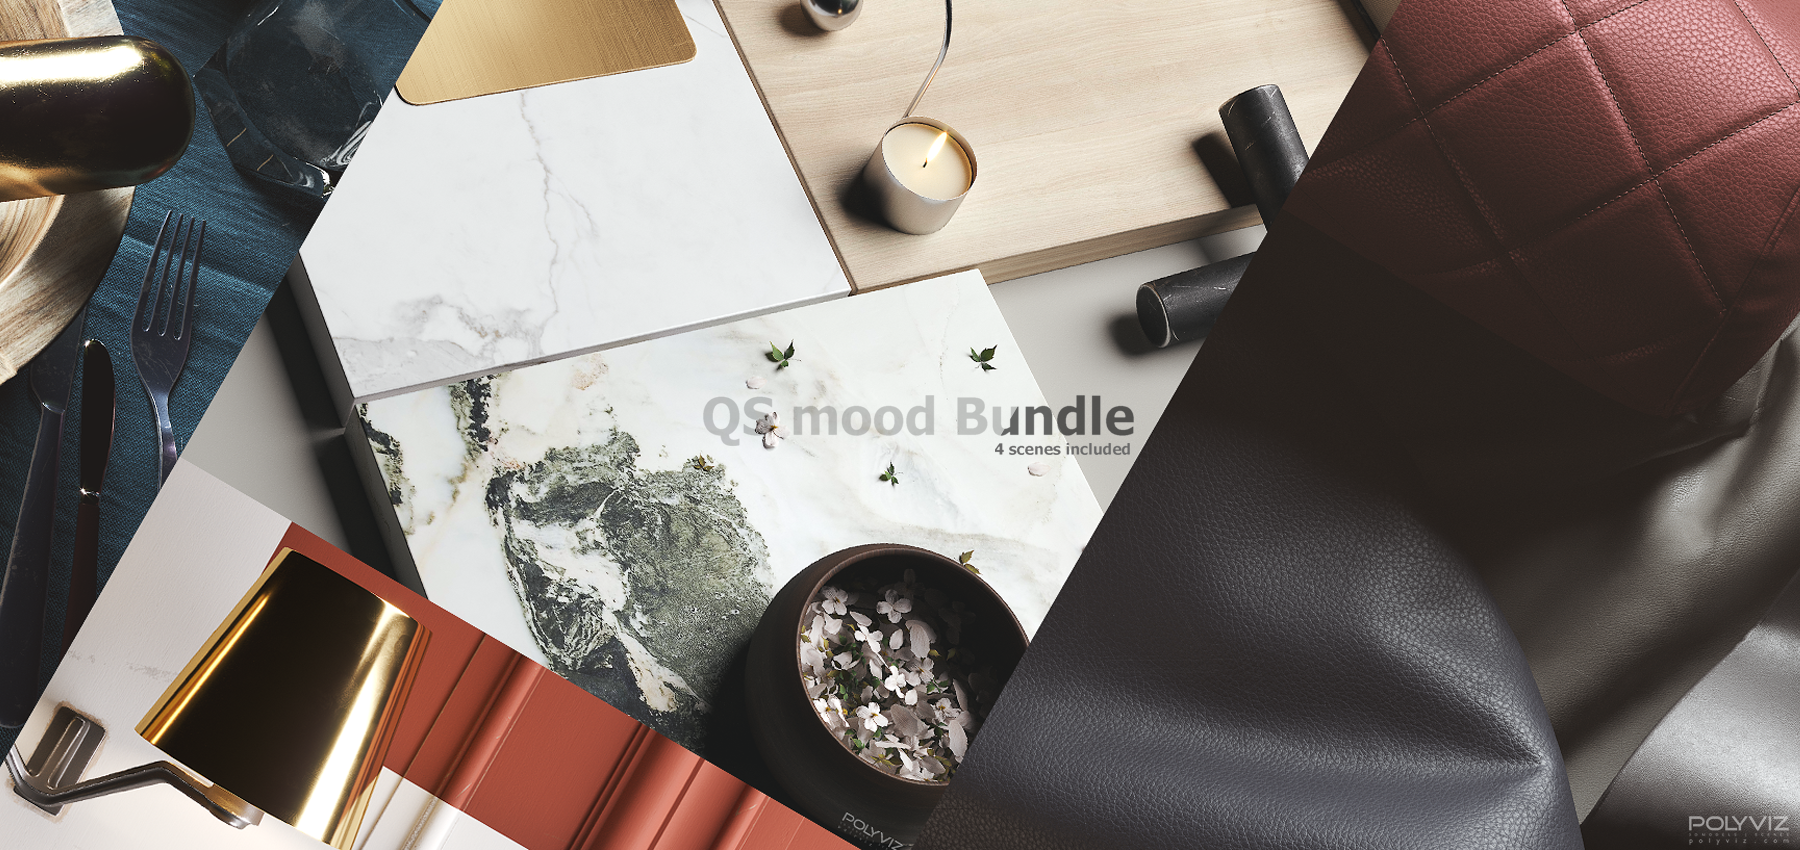 QS mood Bundle